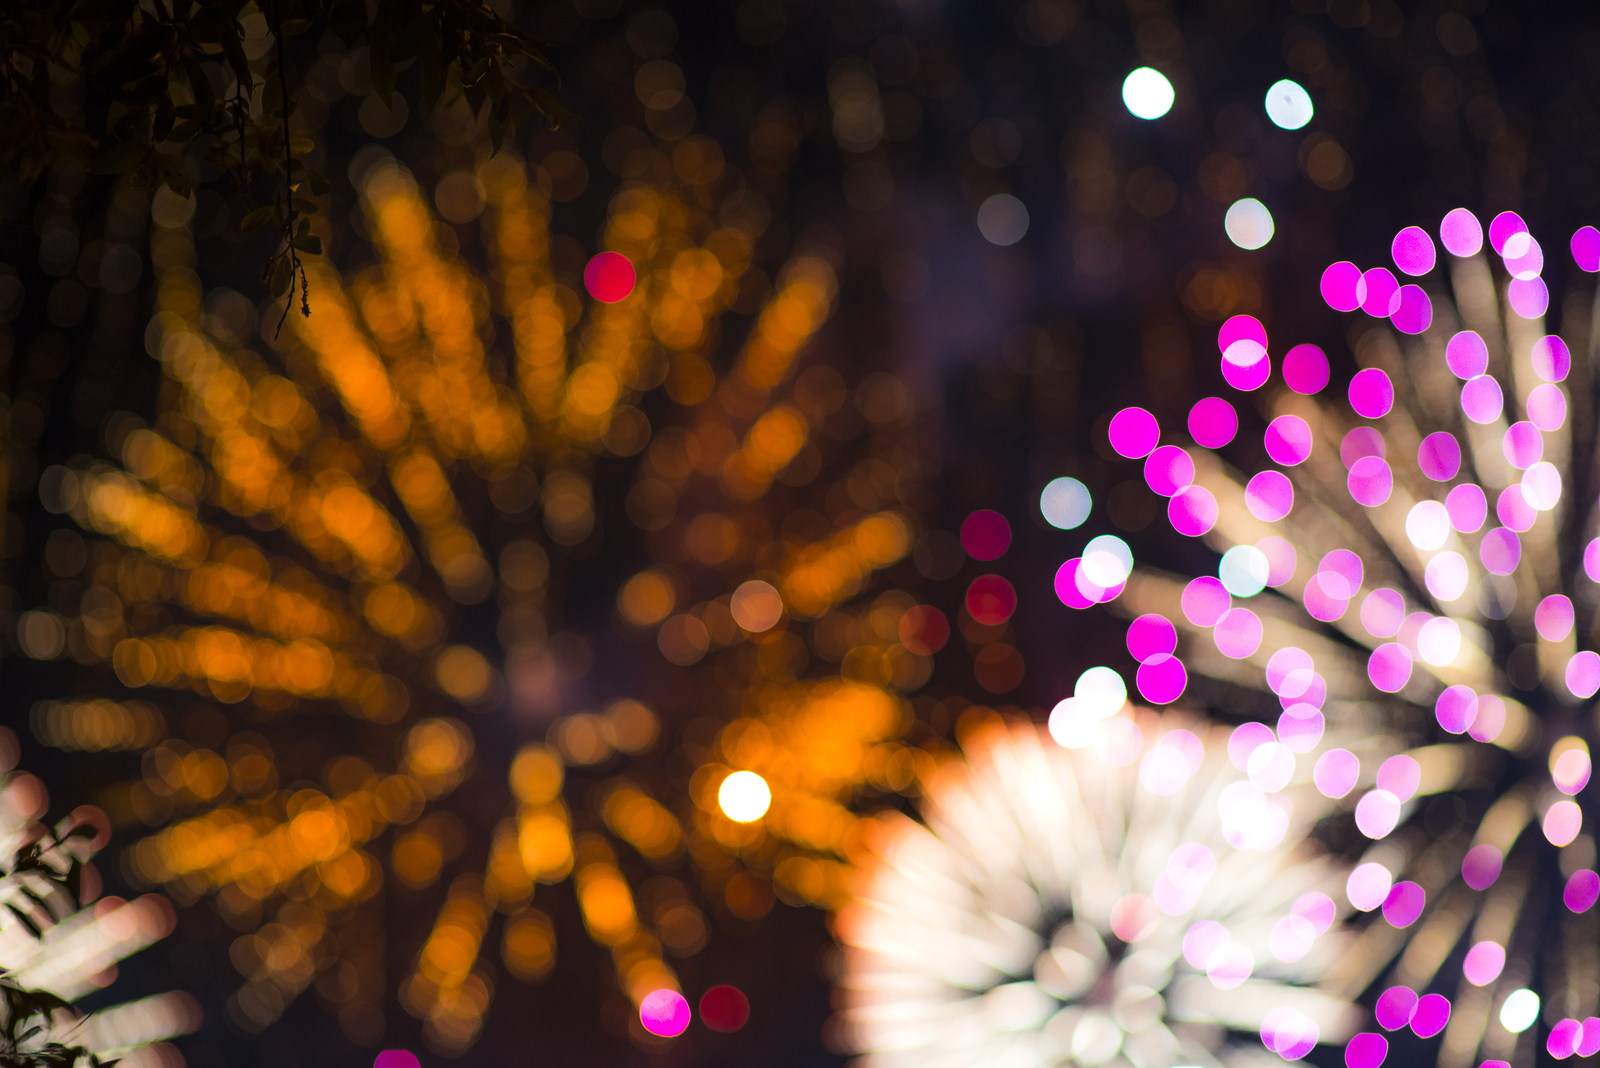 bigstock-Colorful-Firework-Amazing-Fir-260140855[681].jpg